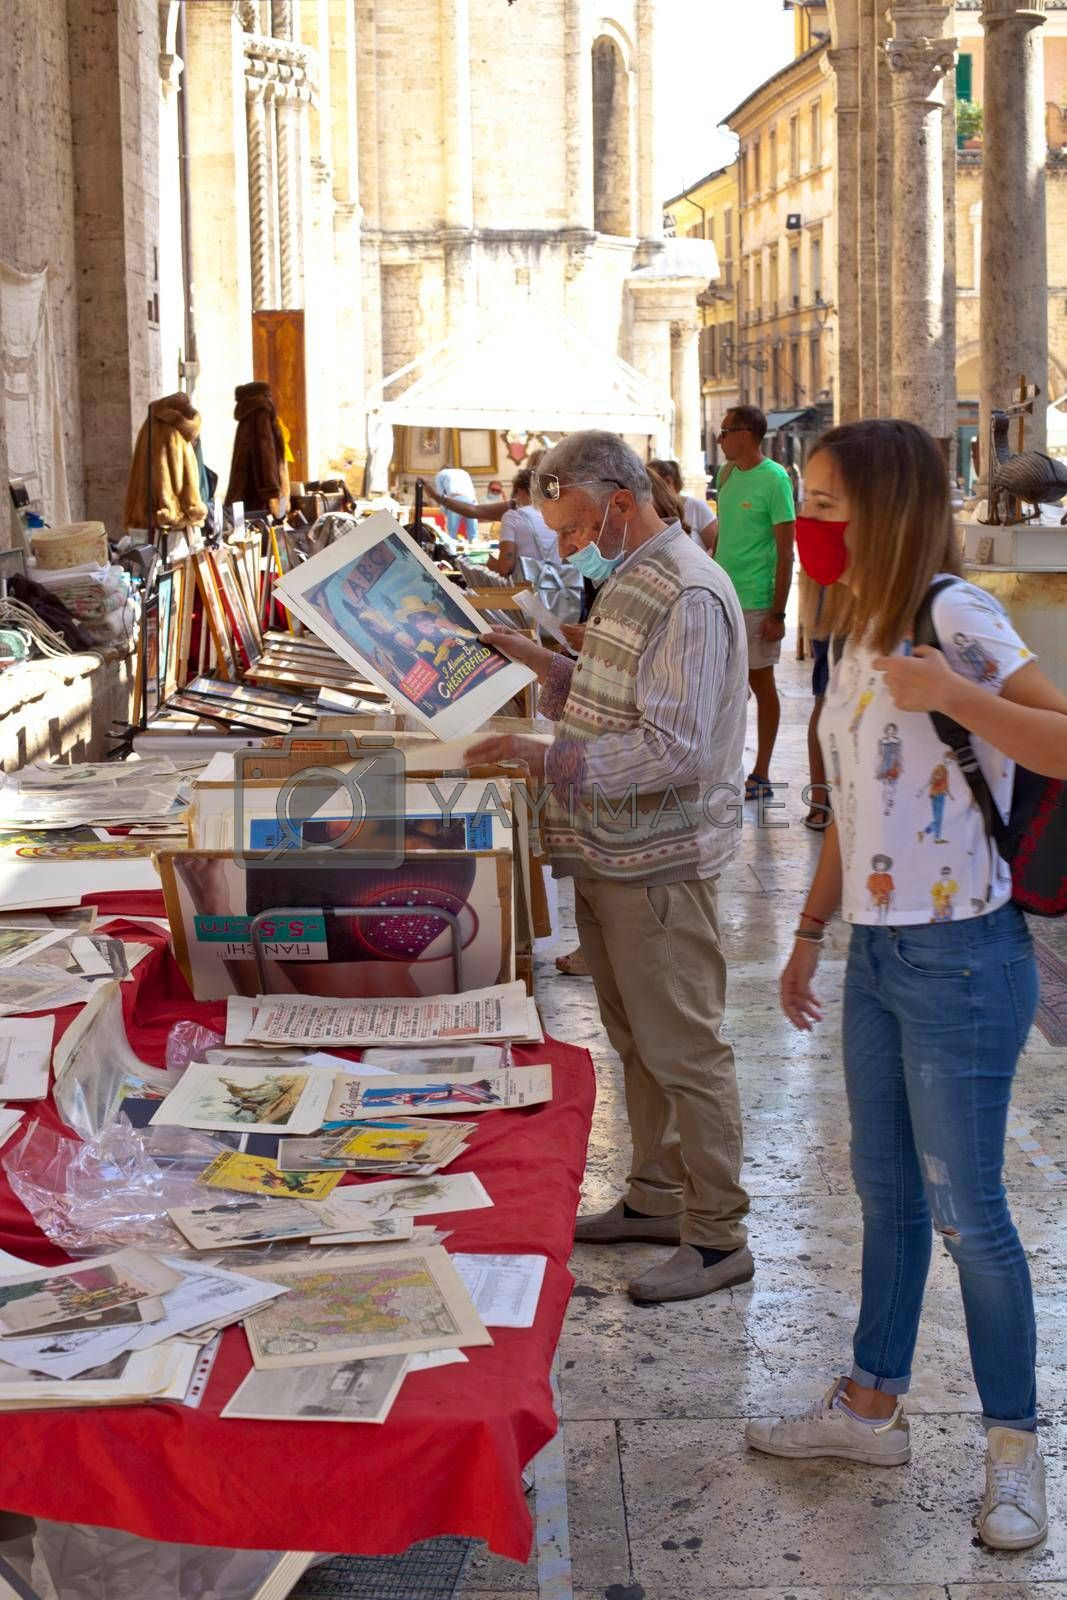 Ascoli Piceno, Italy - September 20, 2020: Antiques and vintage market on the streets of Ascoli Piceno, large antique and vintage market.